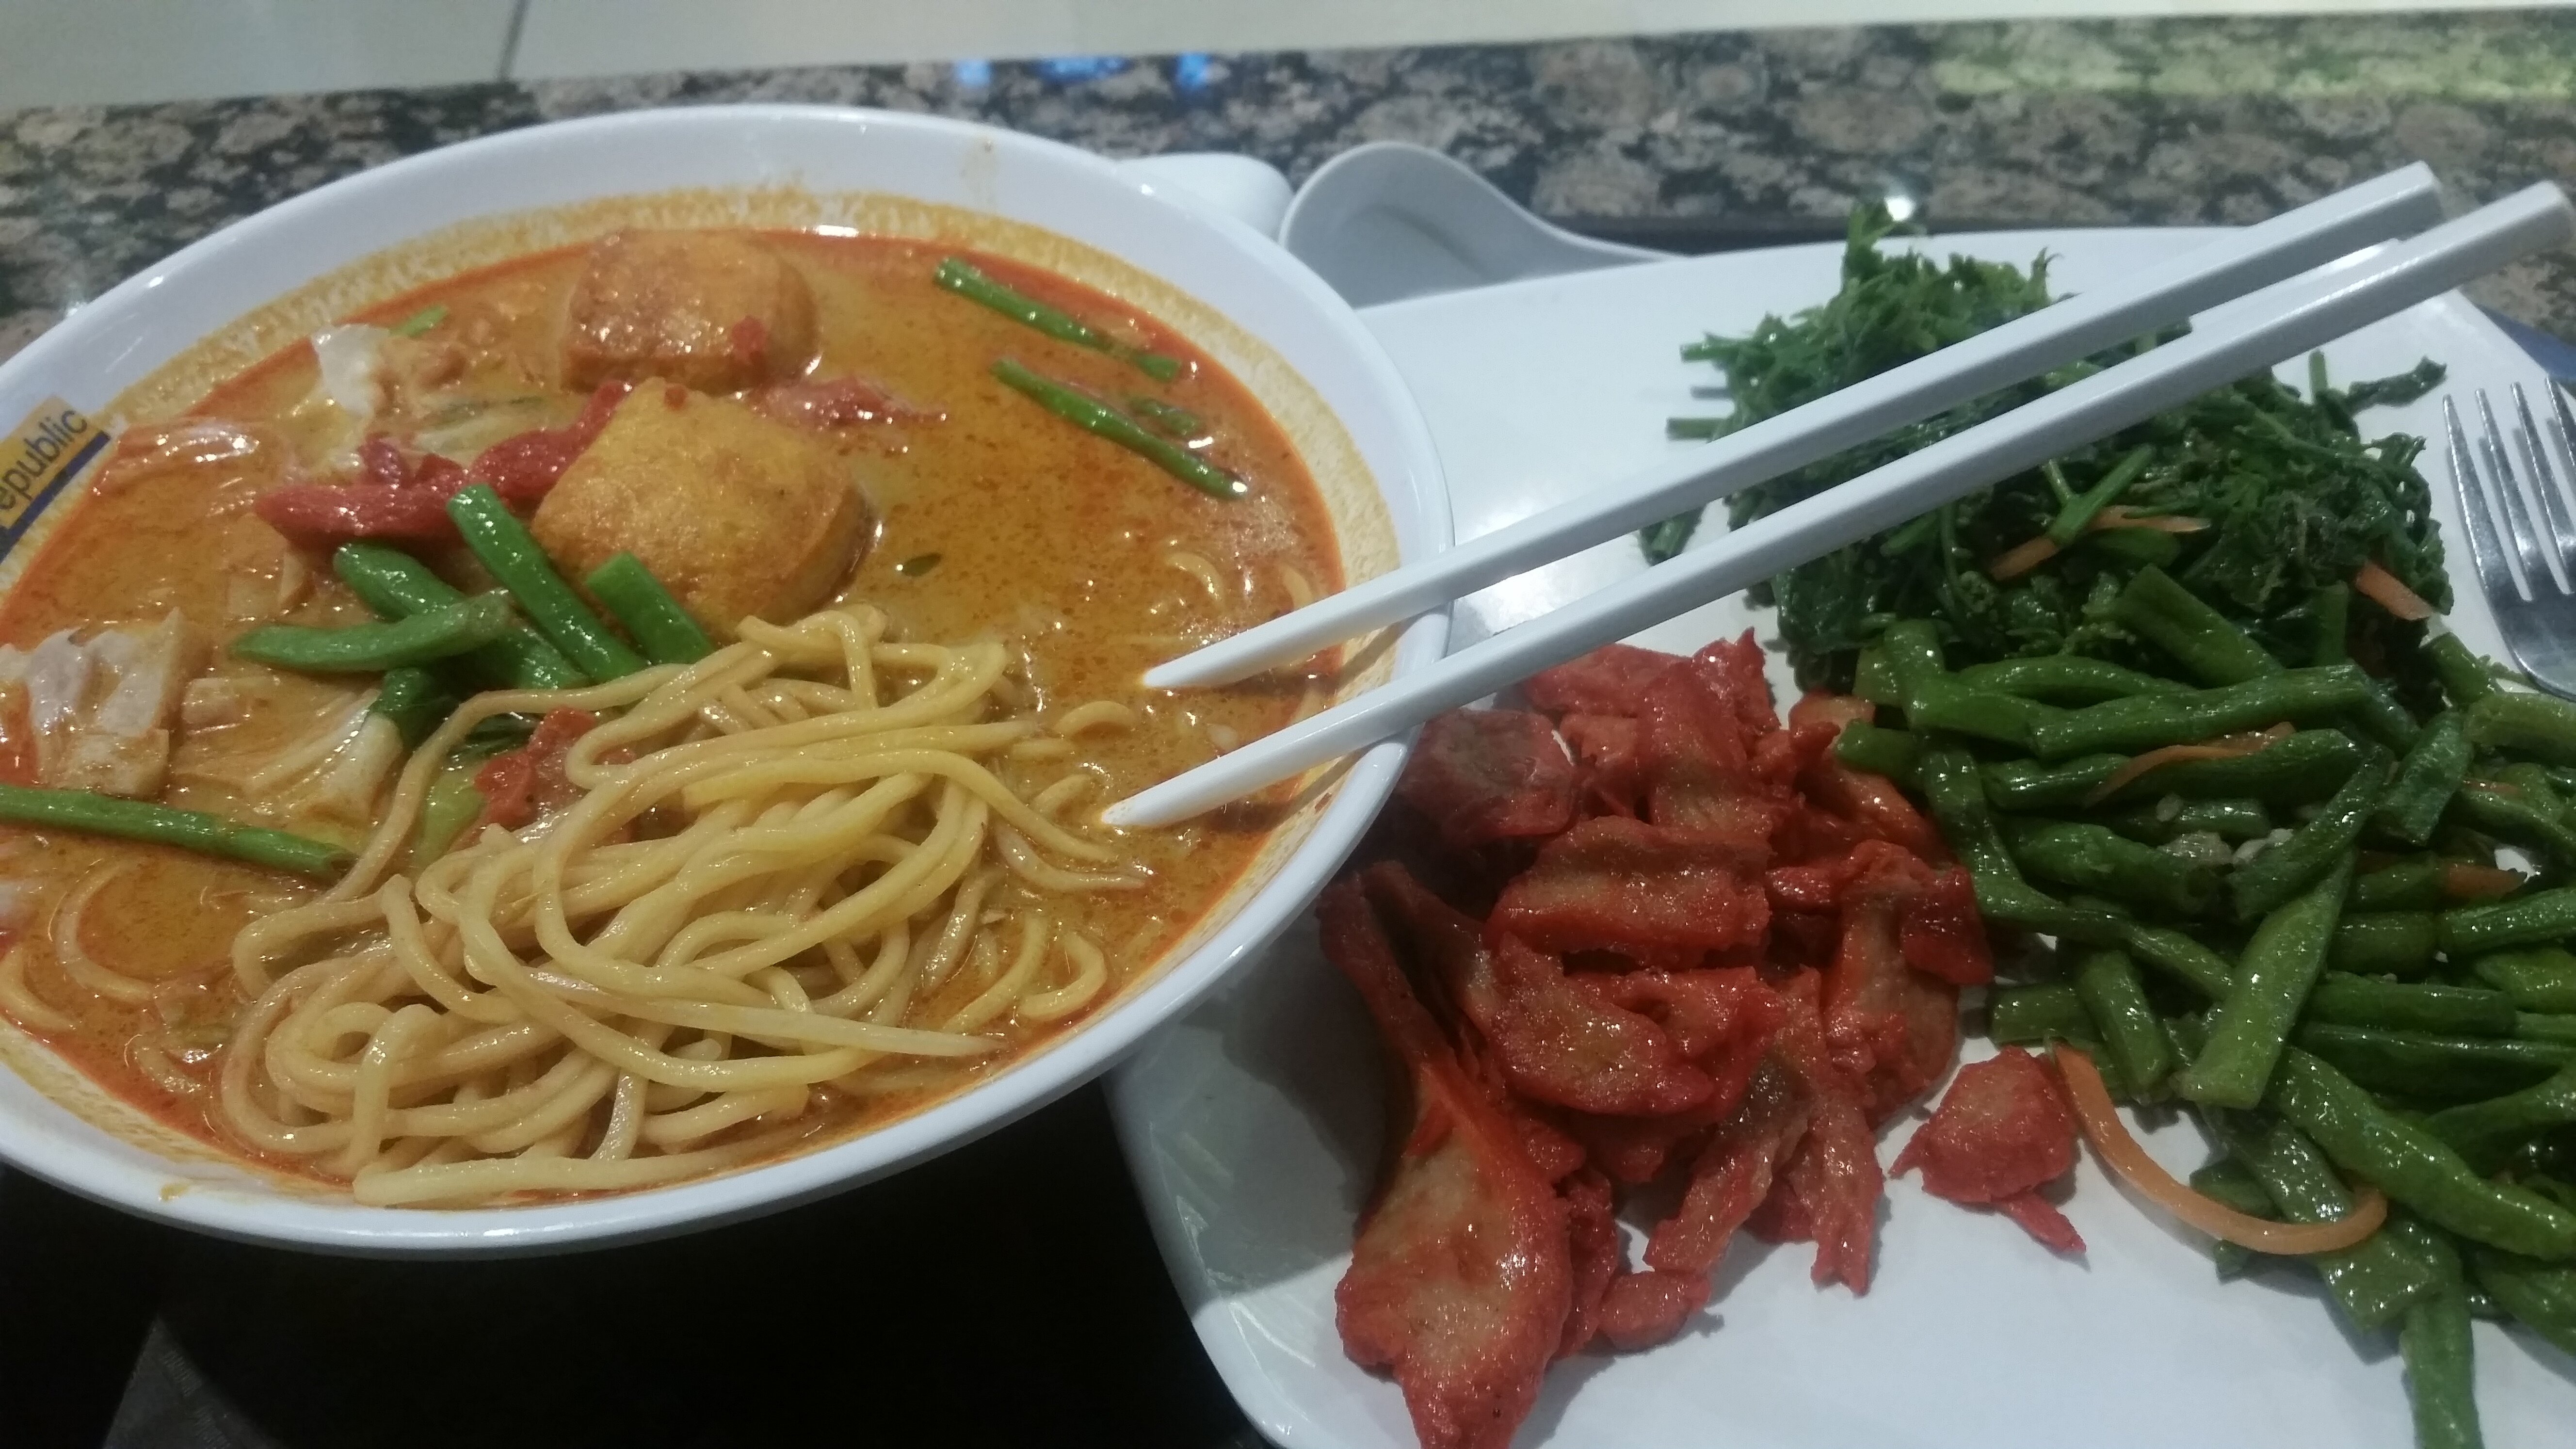 Curry Noodles with a handful of side dishes from the Vegetarian stand in the Food Republic food court in Pavilion.